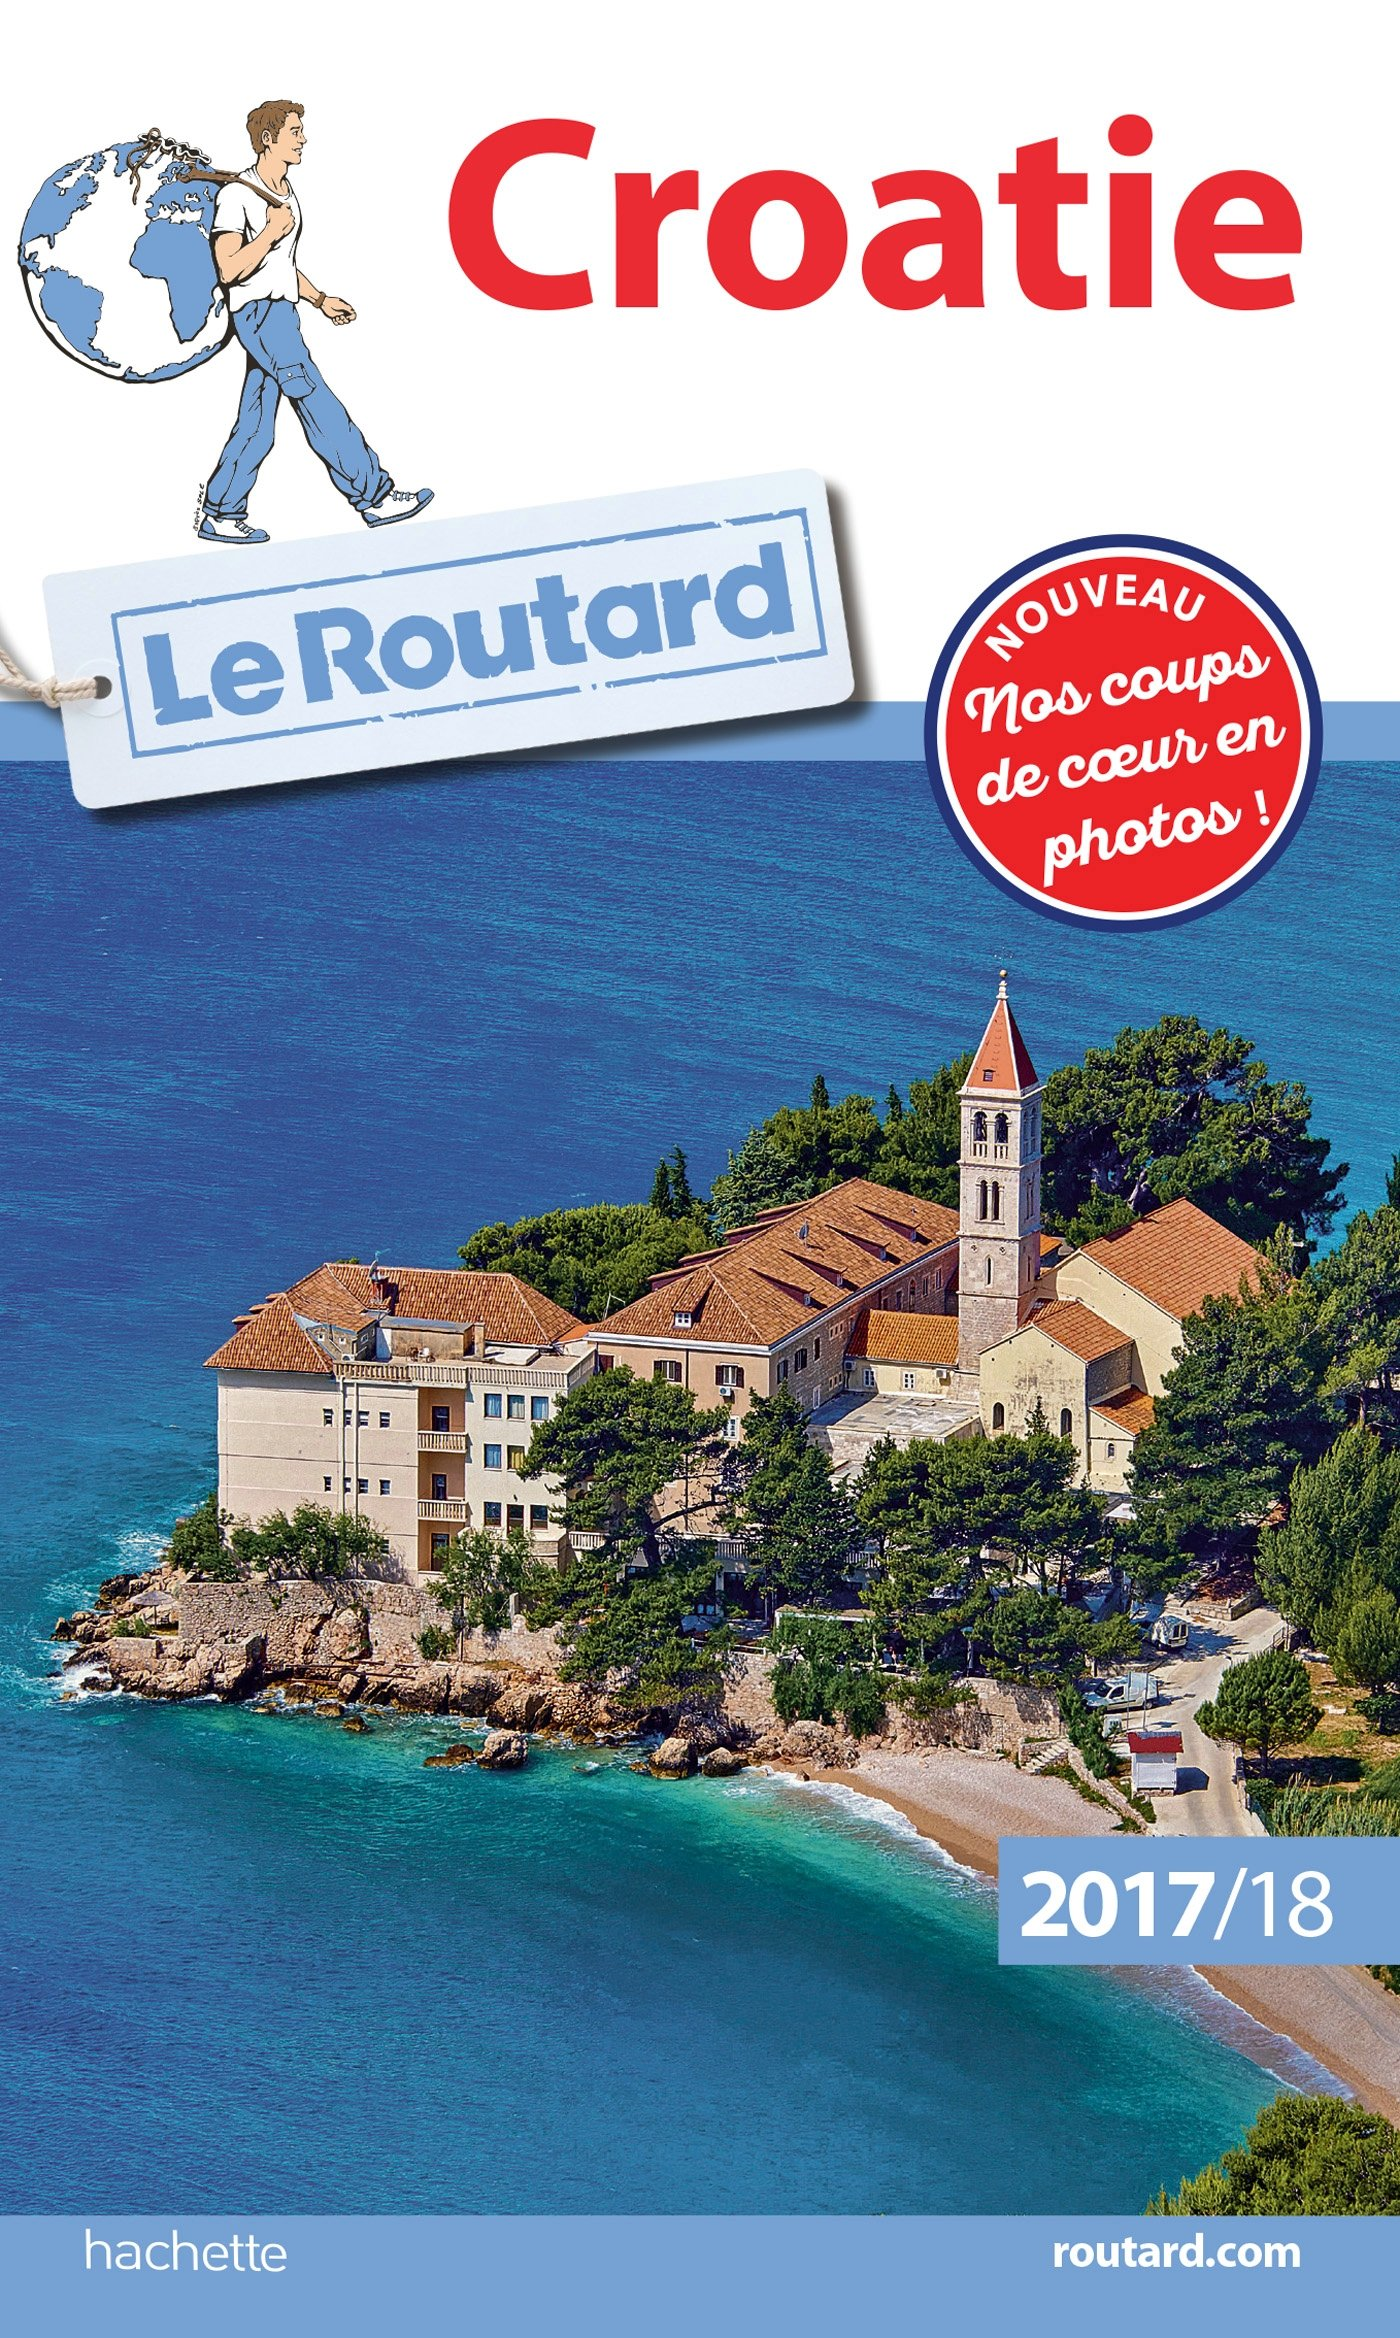 Carte Croatie Routard.Amazon Fr Guide Du Routard Croatie 2017 18 Collectif